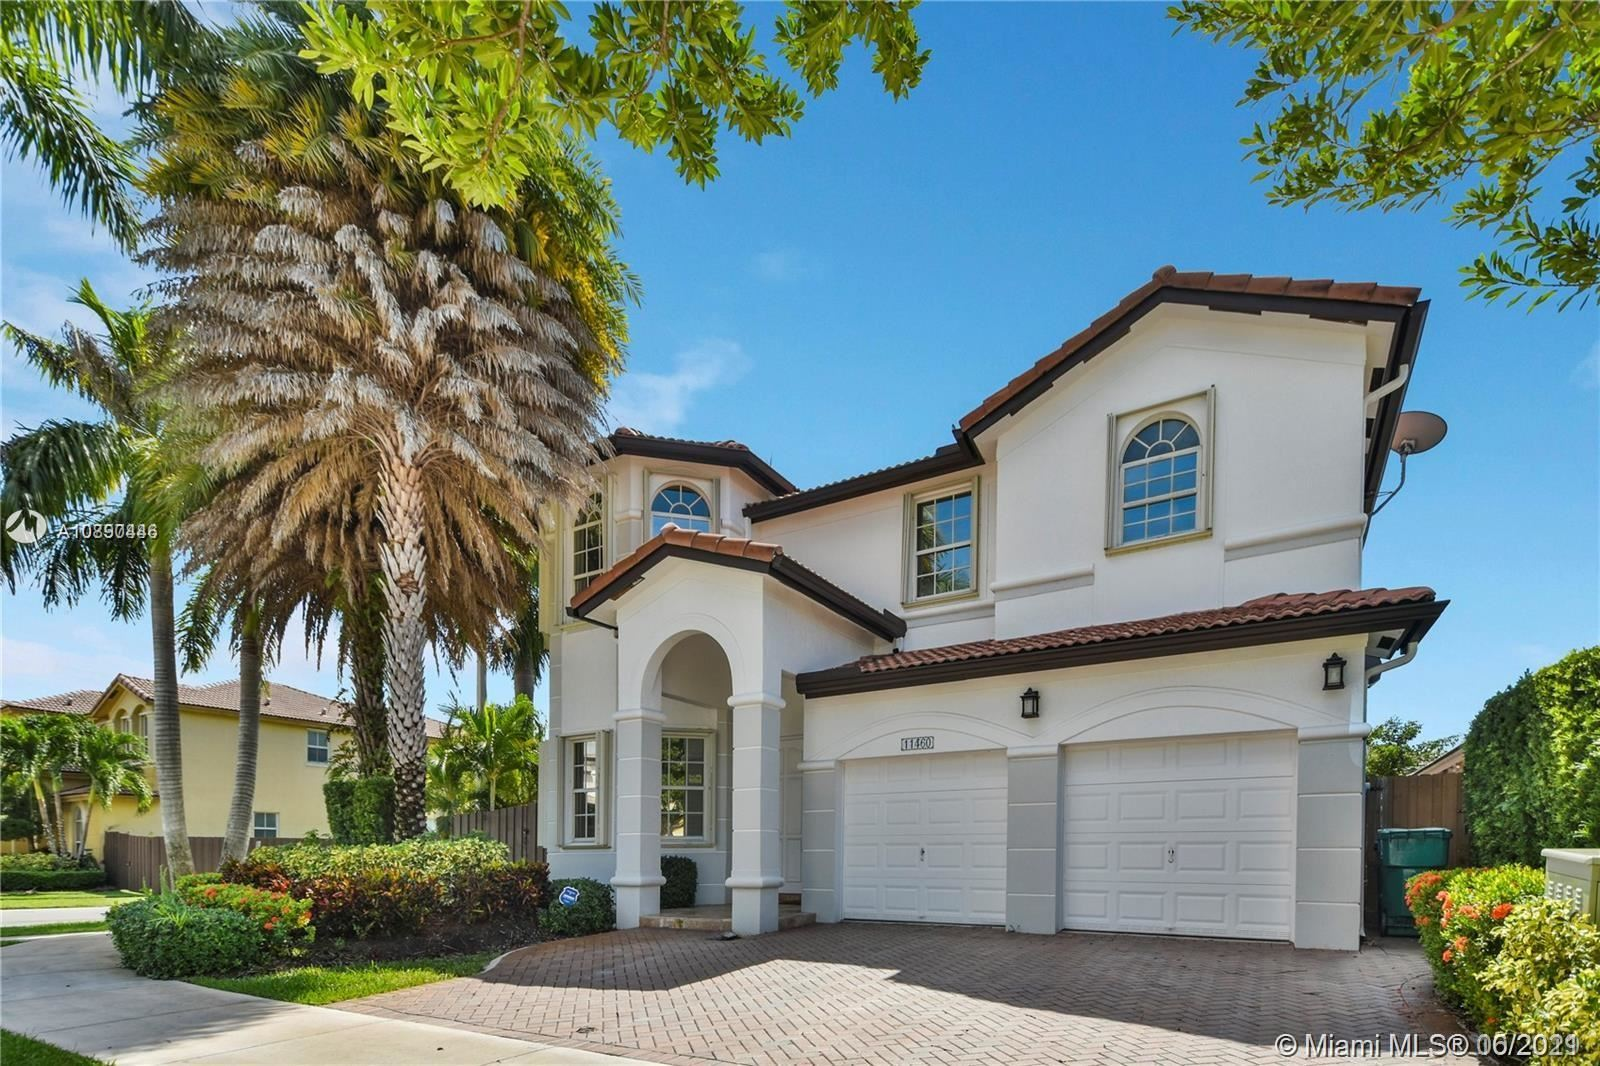 11460 NW 82nd Ter, Doral, FL 33178 - #: A10890446